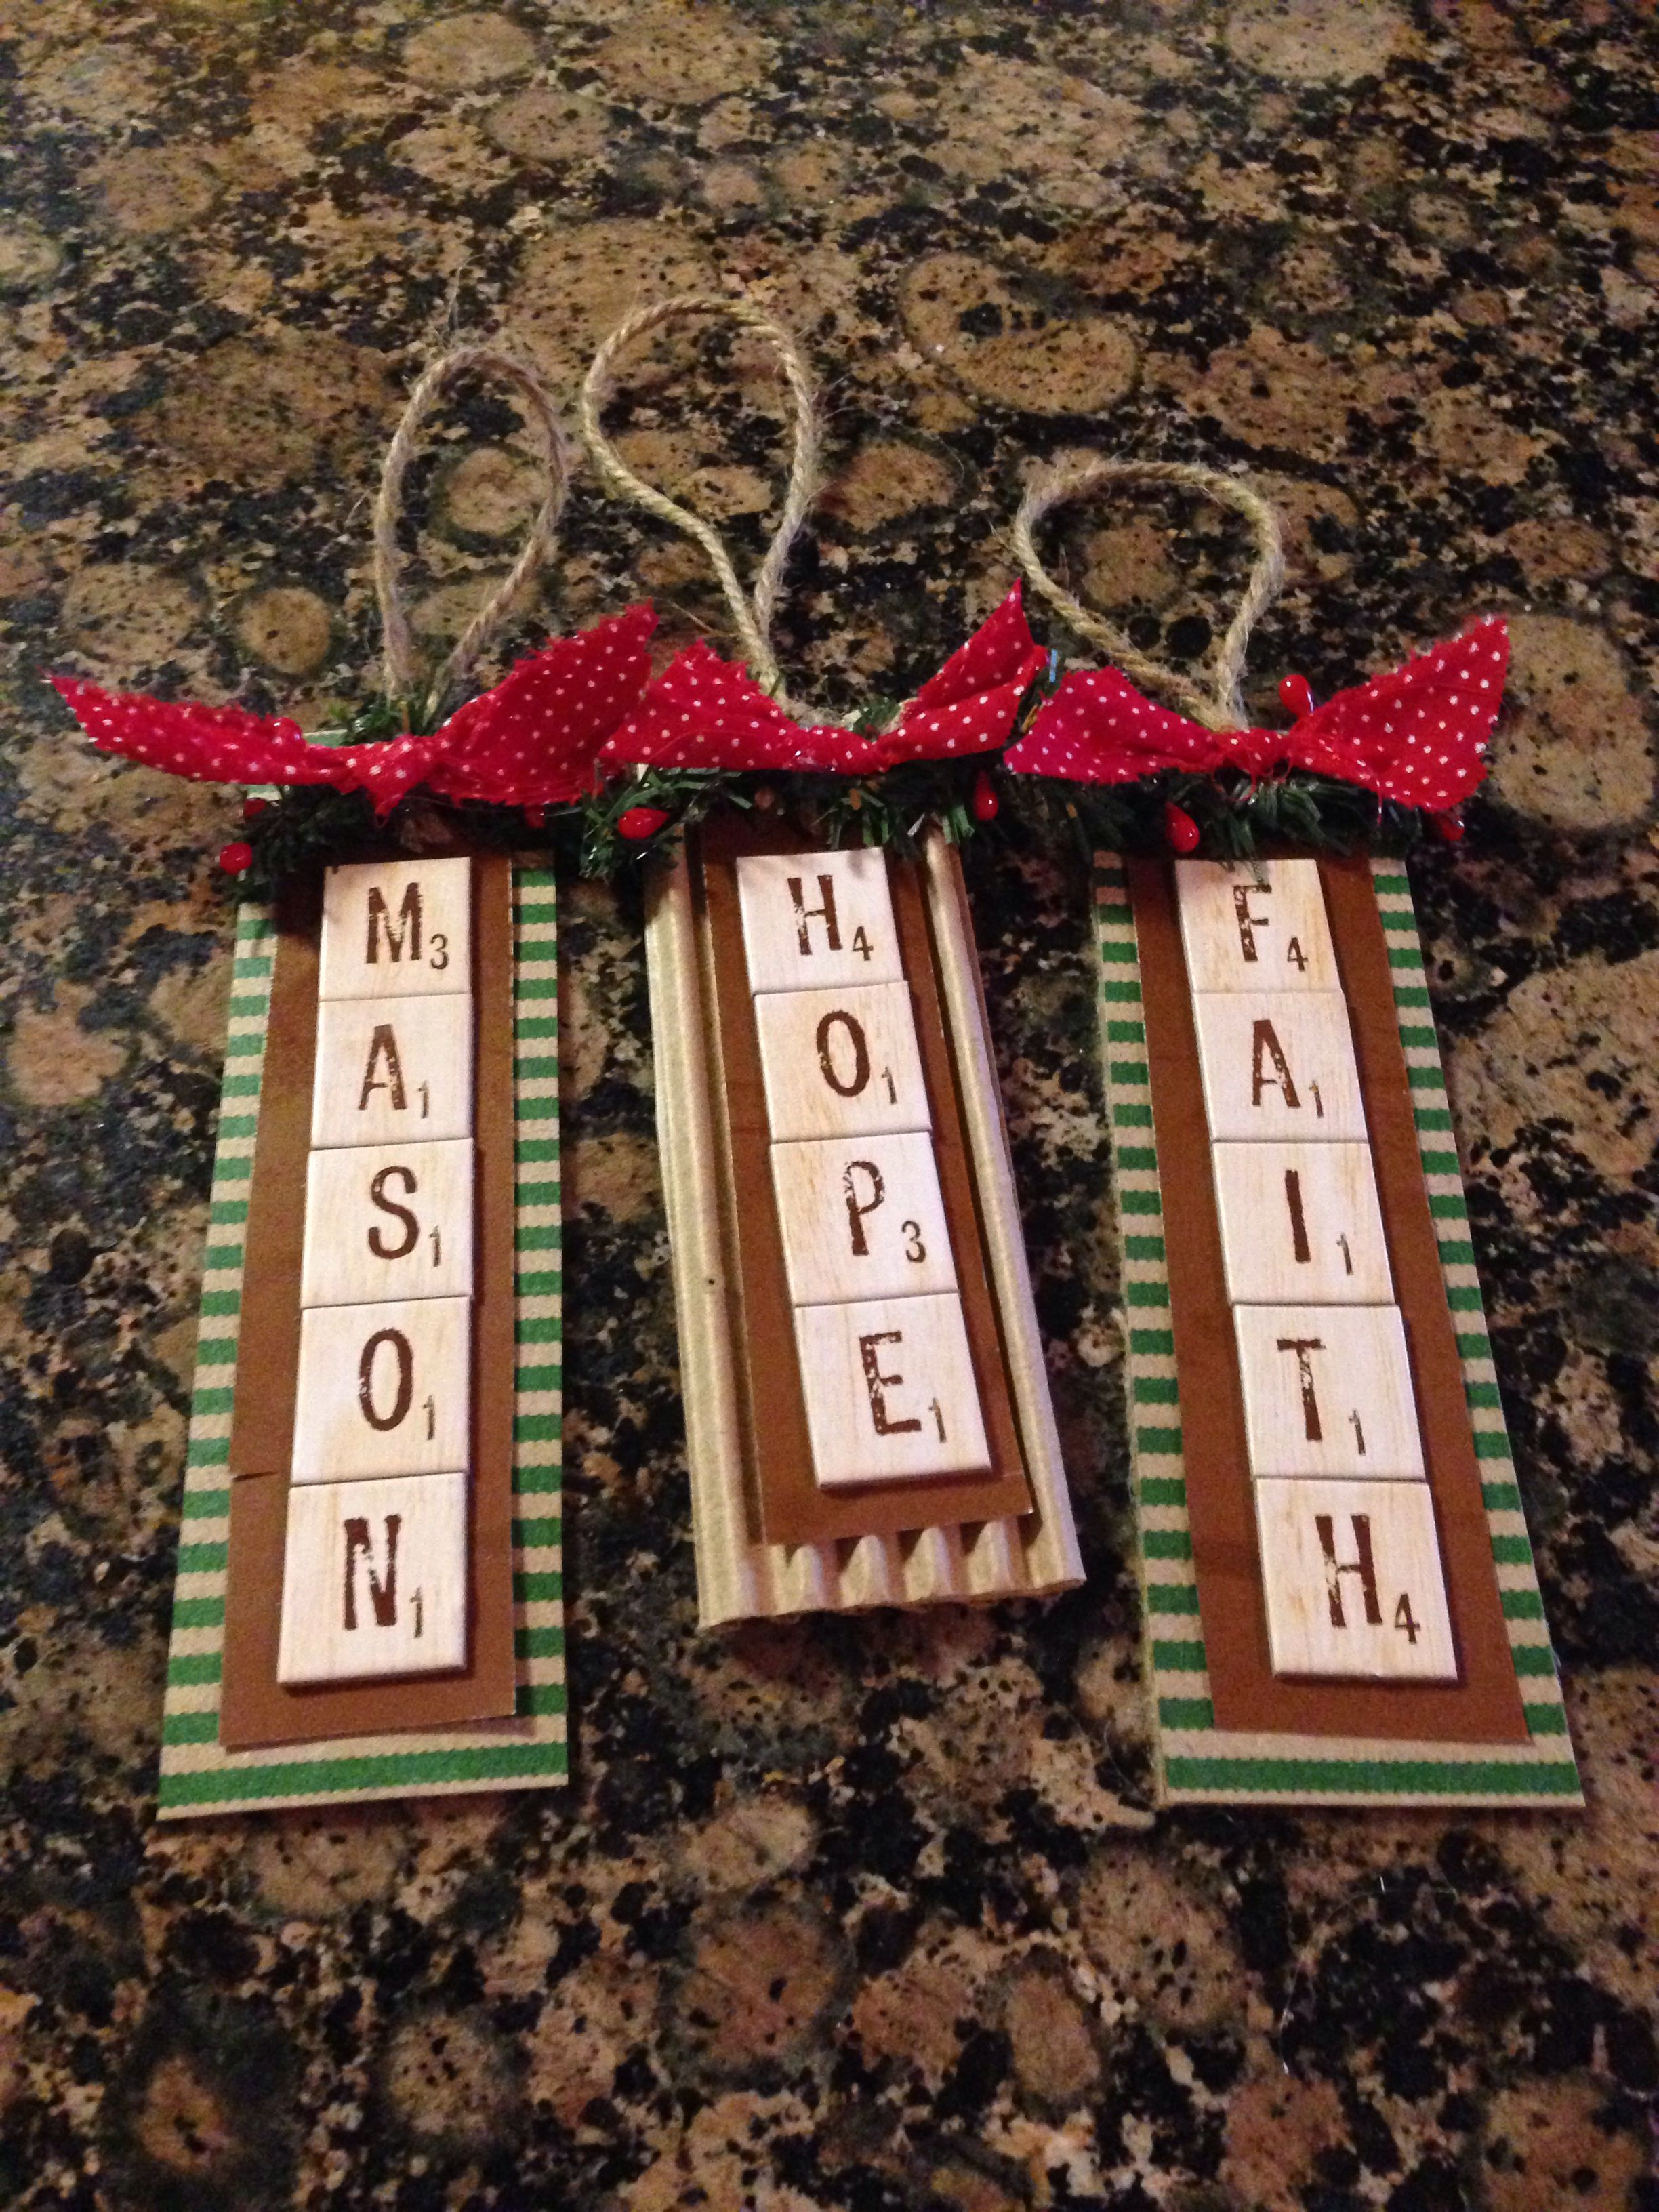 Cute Name Ornaments Scrabble Tile Stickers Rusted Metal Sheet And Cardstock Or Corrugated Cardboard Christmas Ornament Crafts Christmas Crafts Xmas Crafts